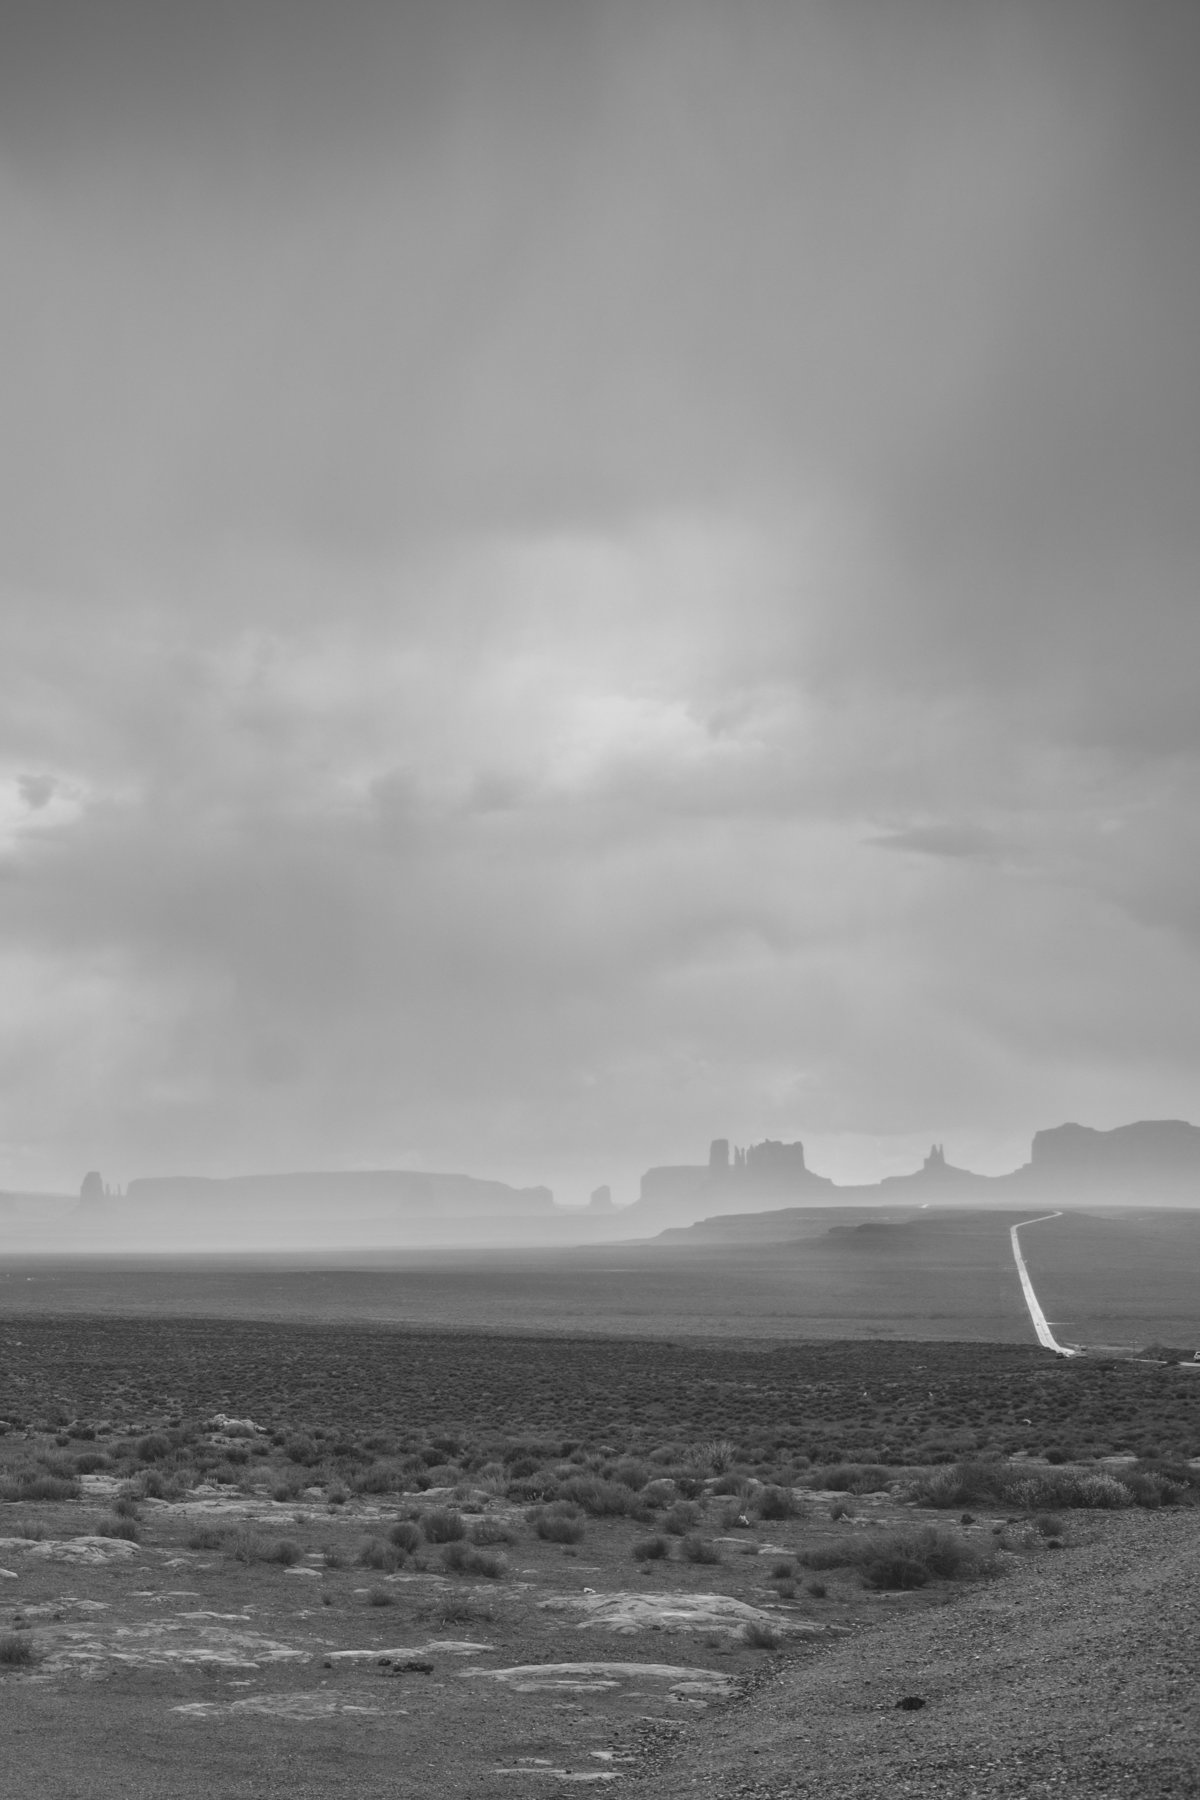 20170601-0001-Southwest_MericaSouthwest_MericaThe_Rainy_Road_to_Monument_Valley